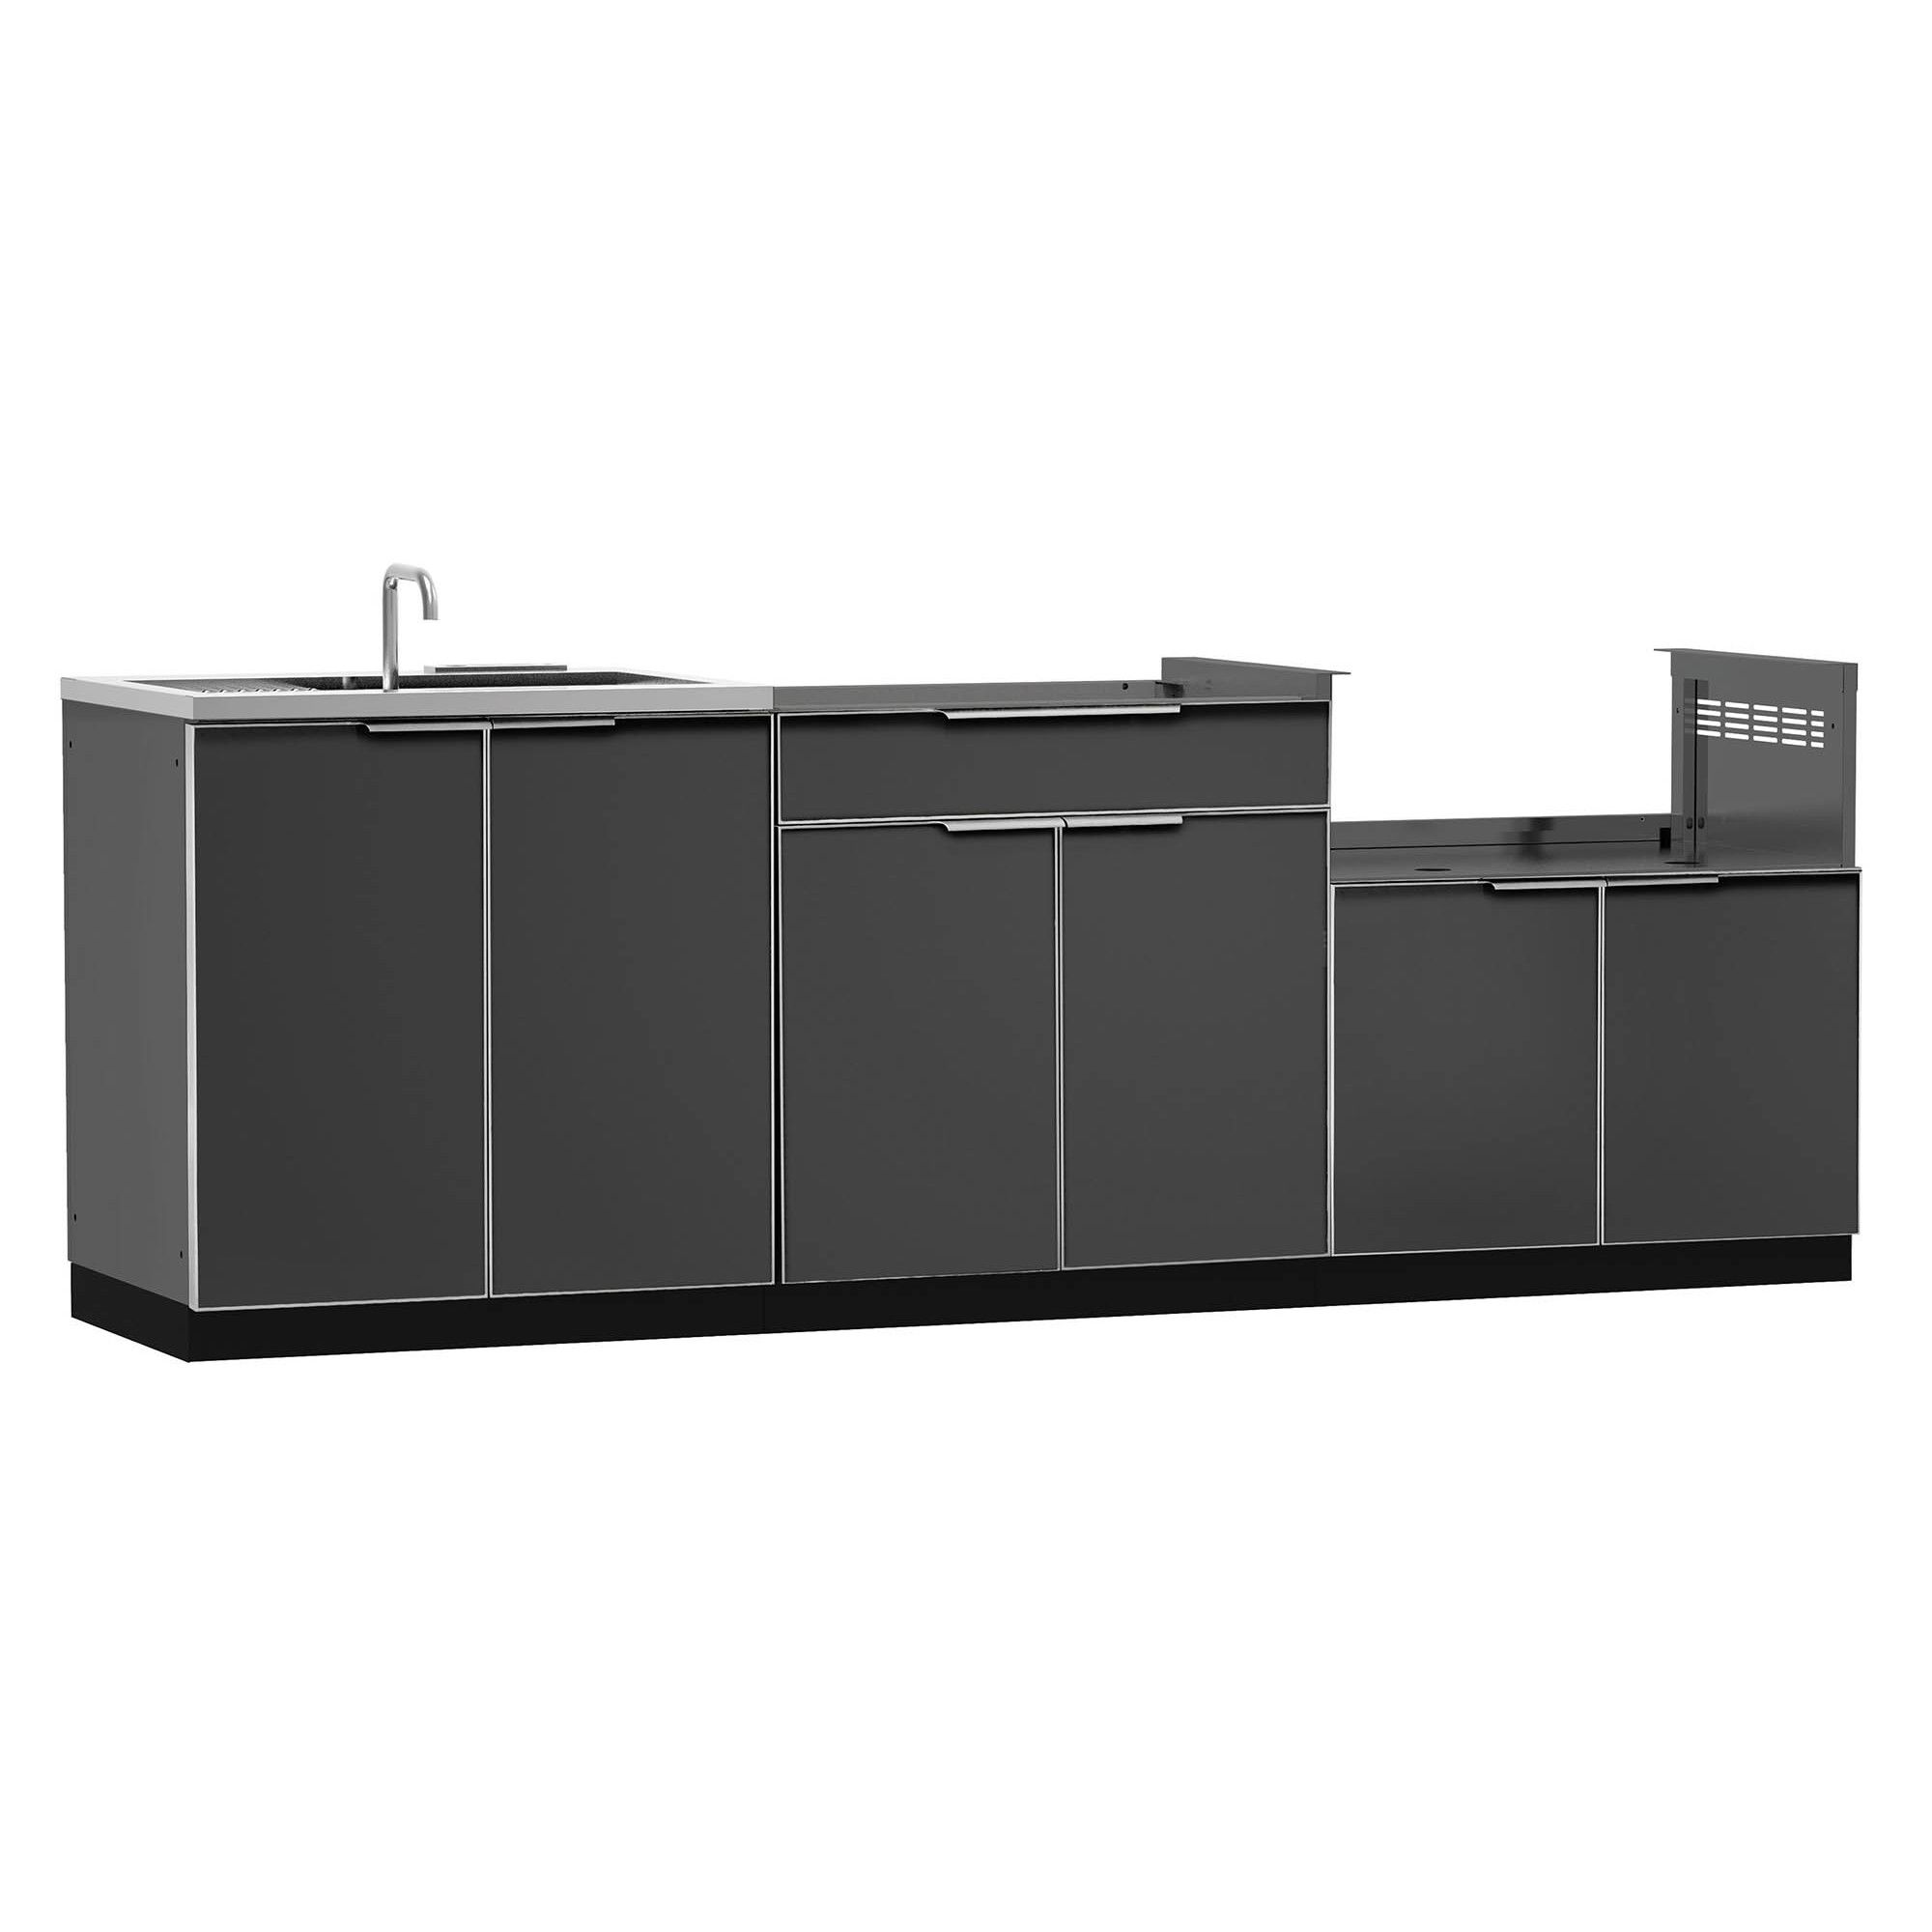 Newage Products Aluminumstainless Steel Silver 97Inch X 24 Fascinating Outdoor Kitchen Home Depot Inspiration